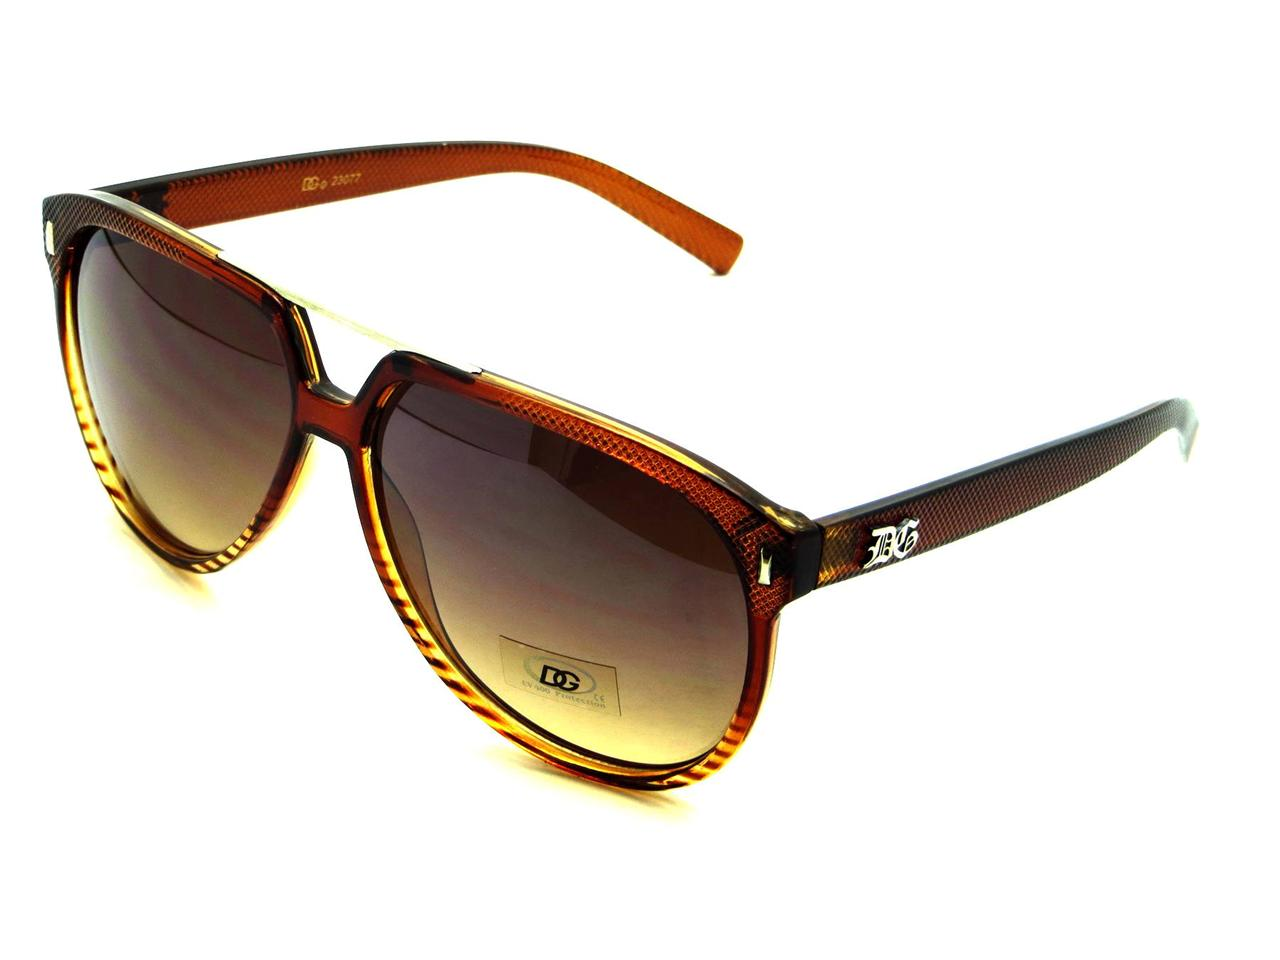 Gift Certificates/Cards International Hot New Releases Best Sellers Today's Deals Sell Your Stuff Search results. of over 1, results for Clubmaster sunglasses have been an iconic piece in the fashion world for SUNGAIT Classic Half Frame Clubmaster Sunglasses with Polarized Lens. by .